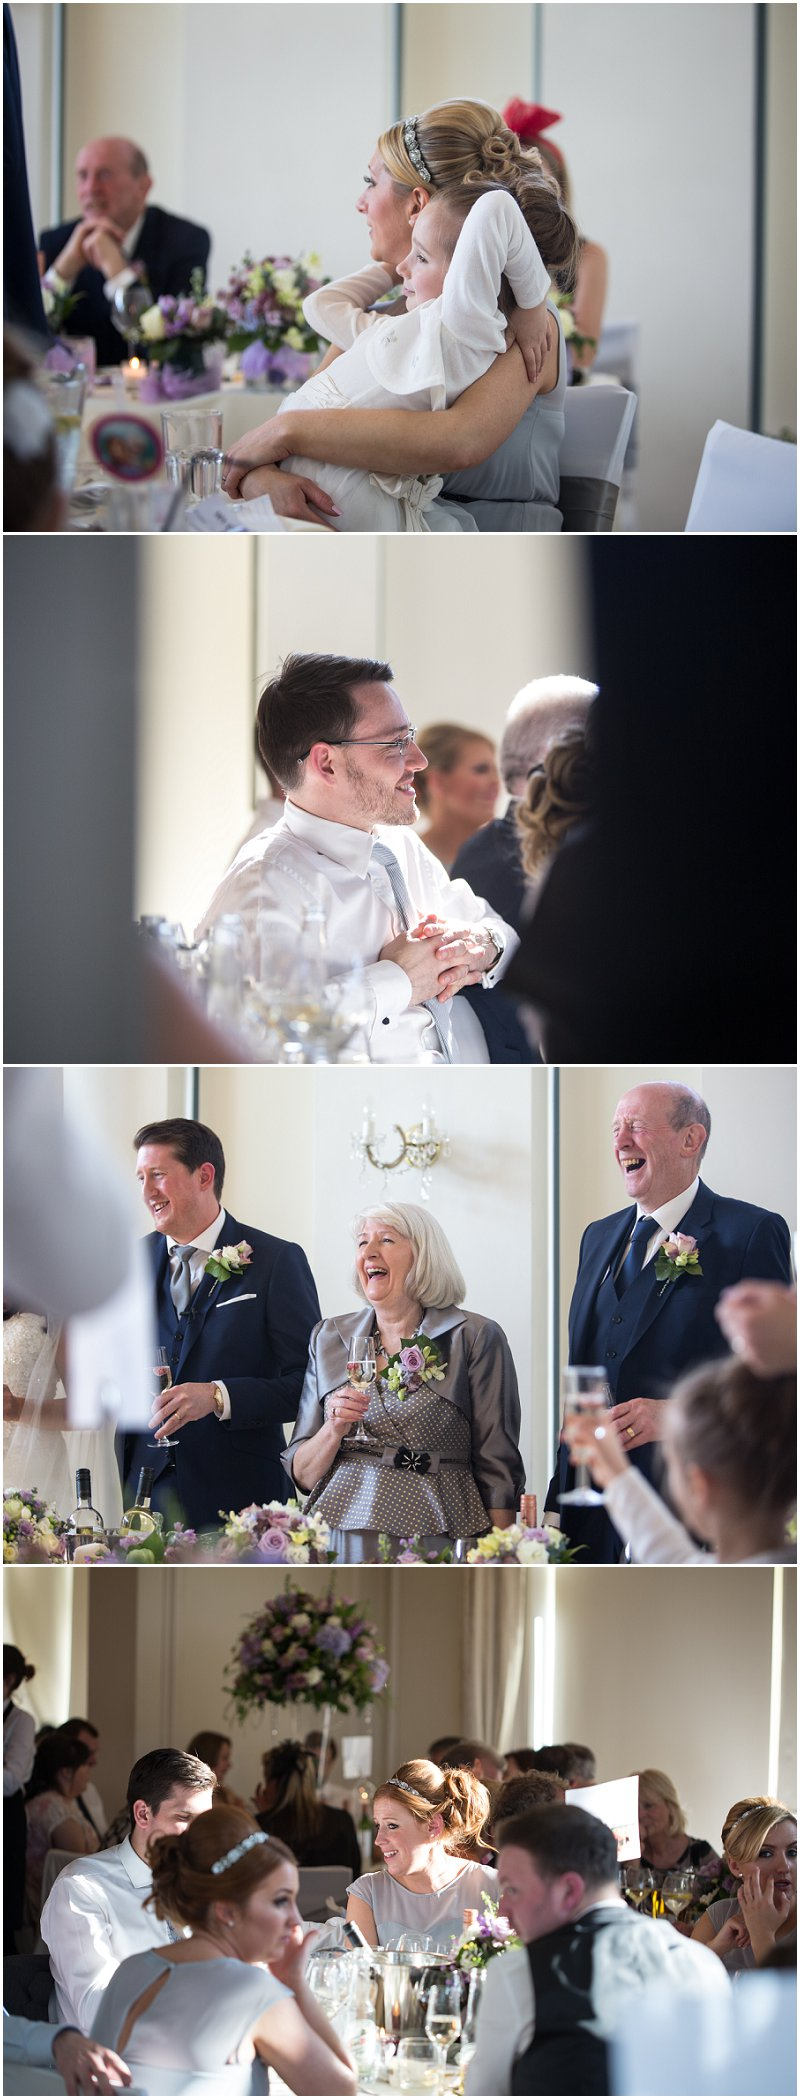 Guests enjoying speeches during Liverpool wedding